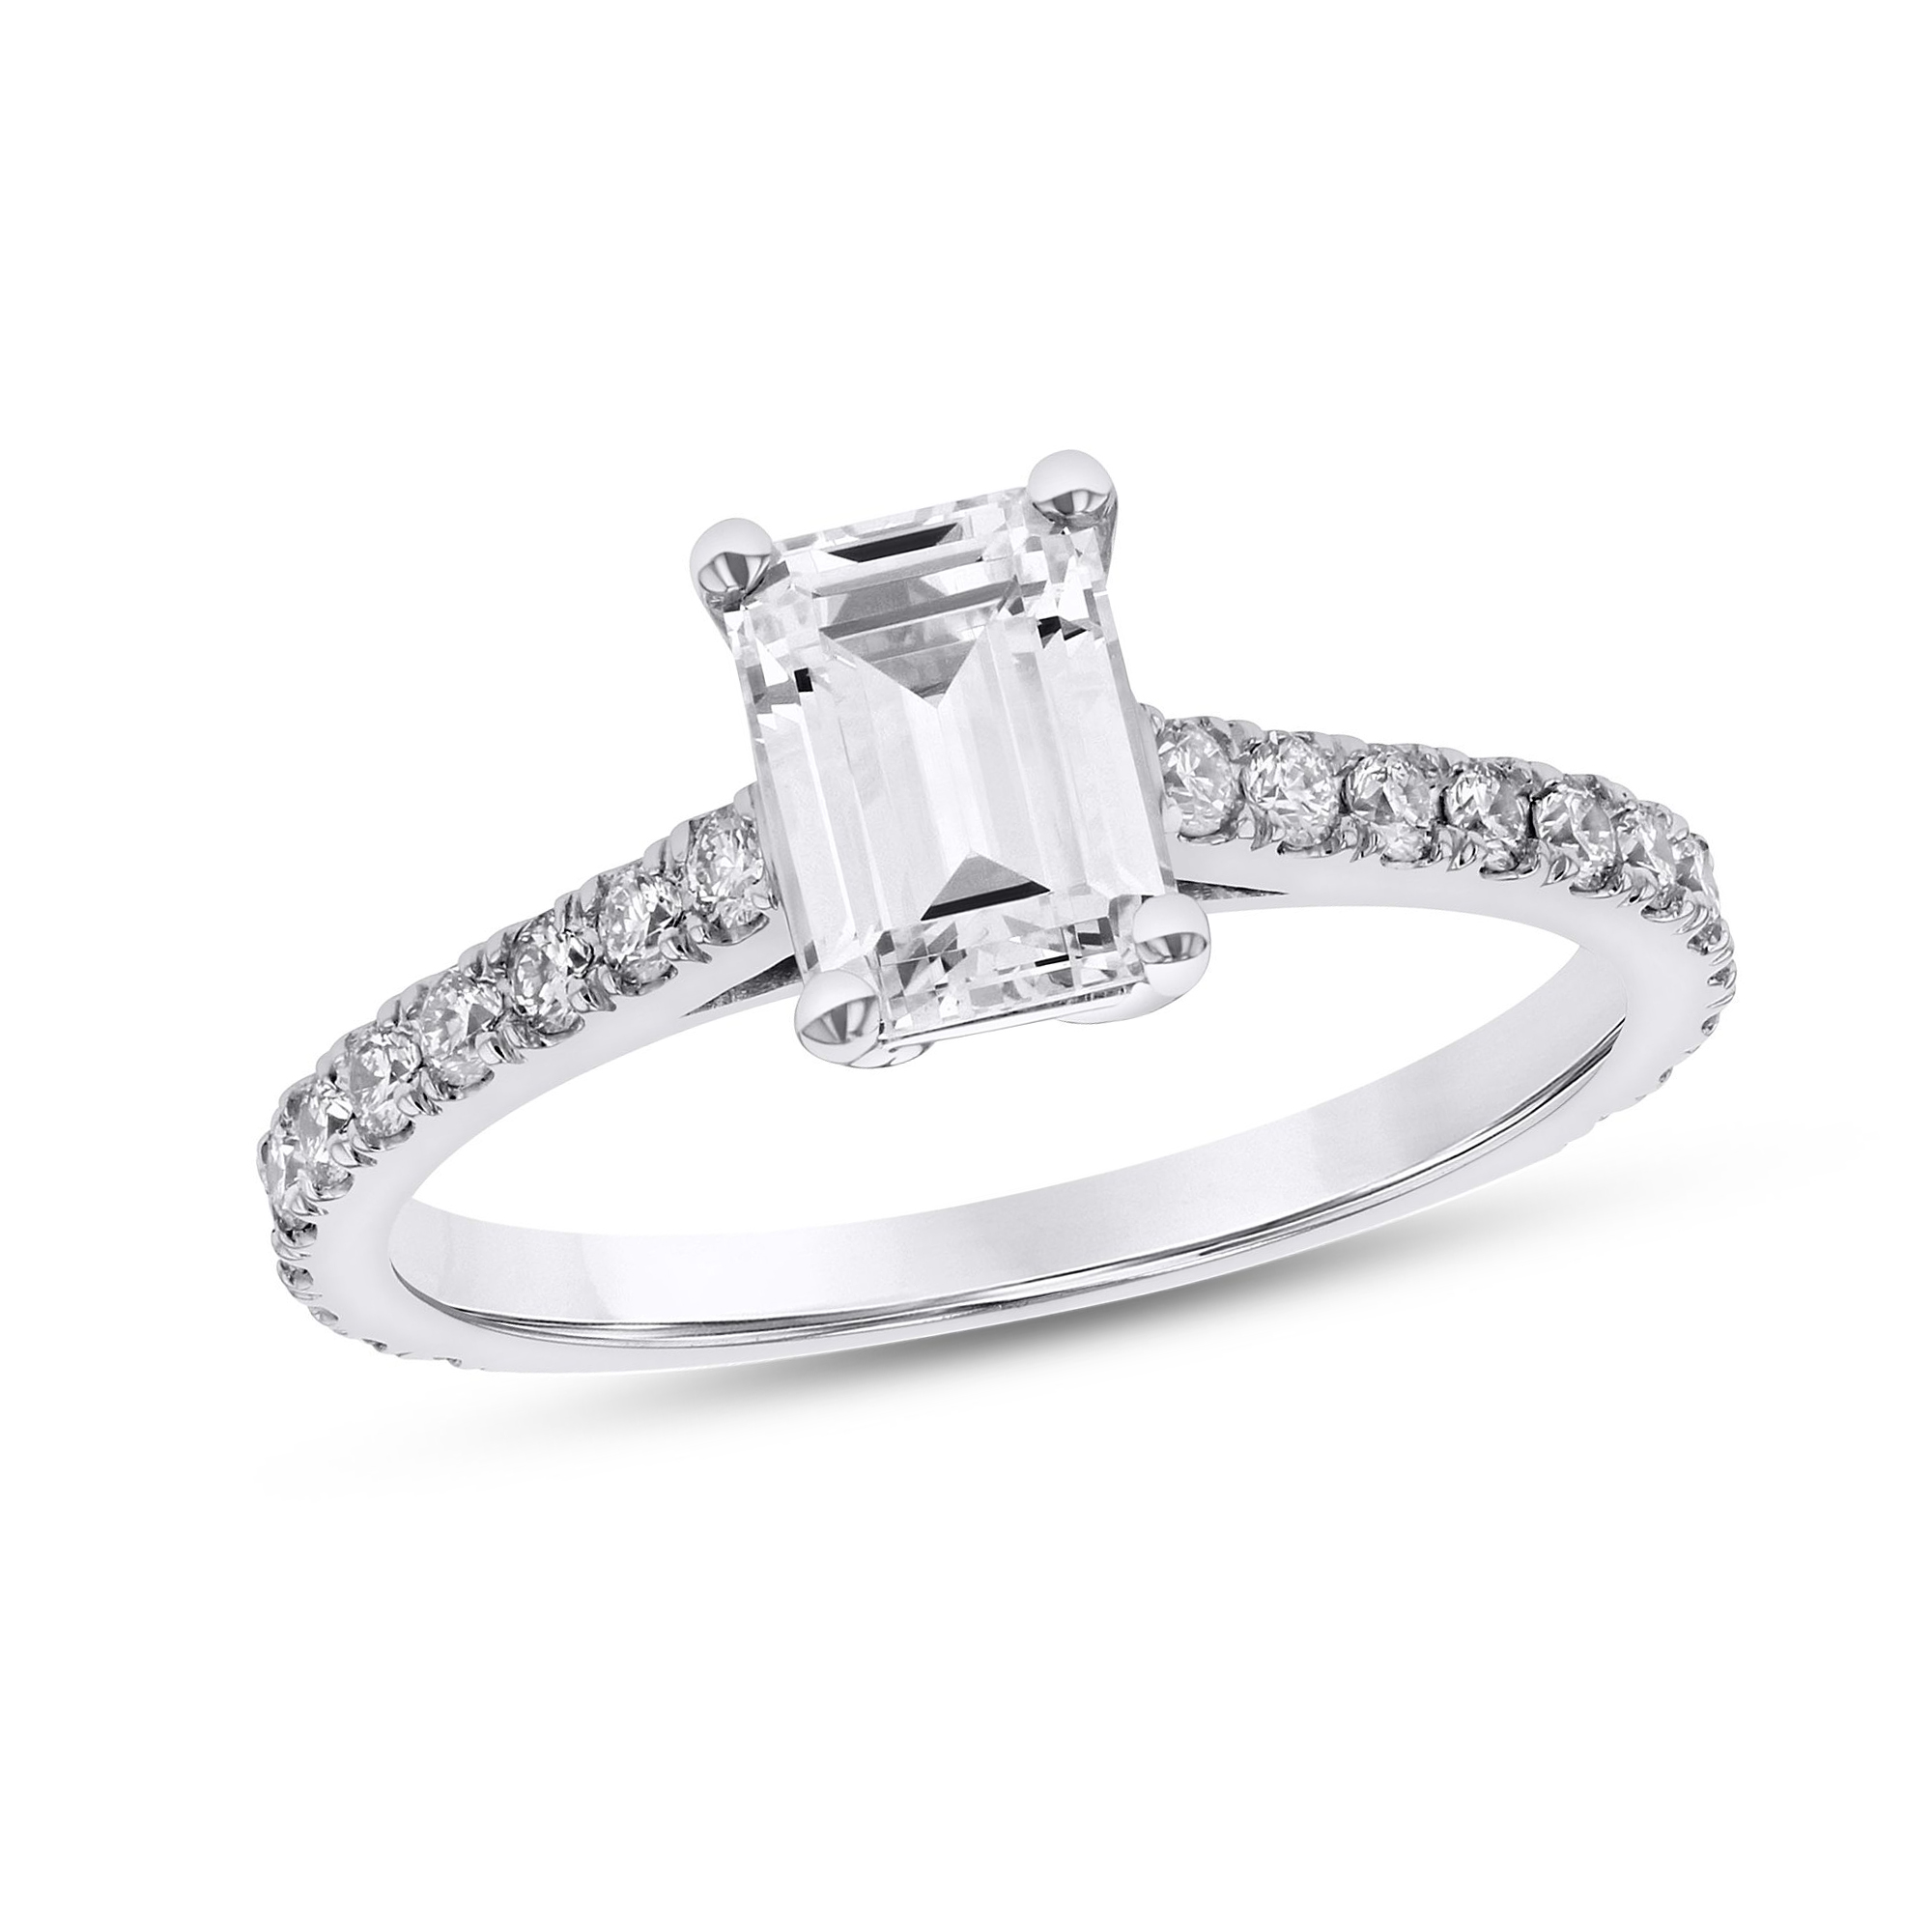 View 1.30ctw Diamond Emerald Cut Engagment Ring in 14k White Gold